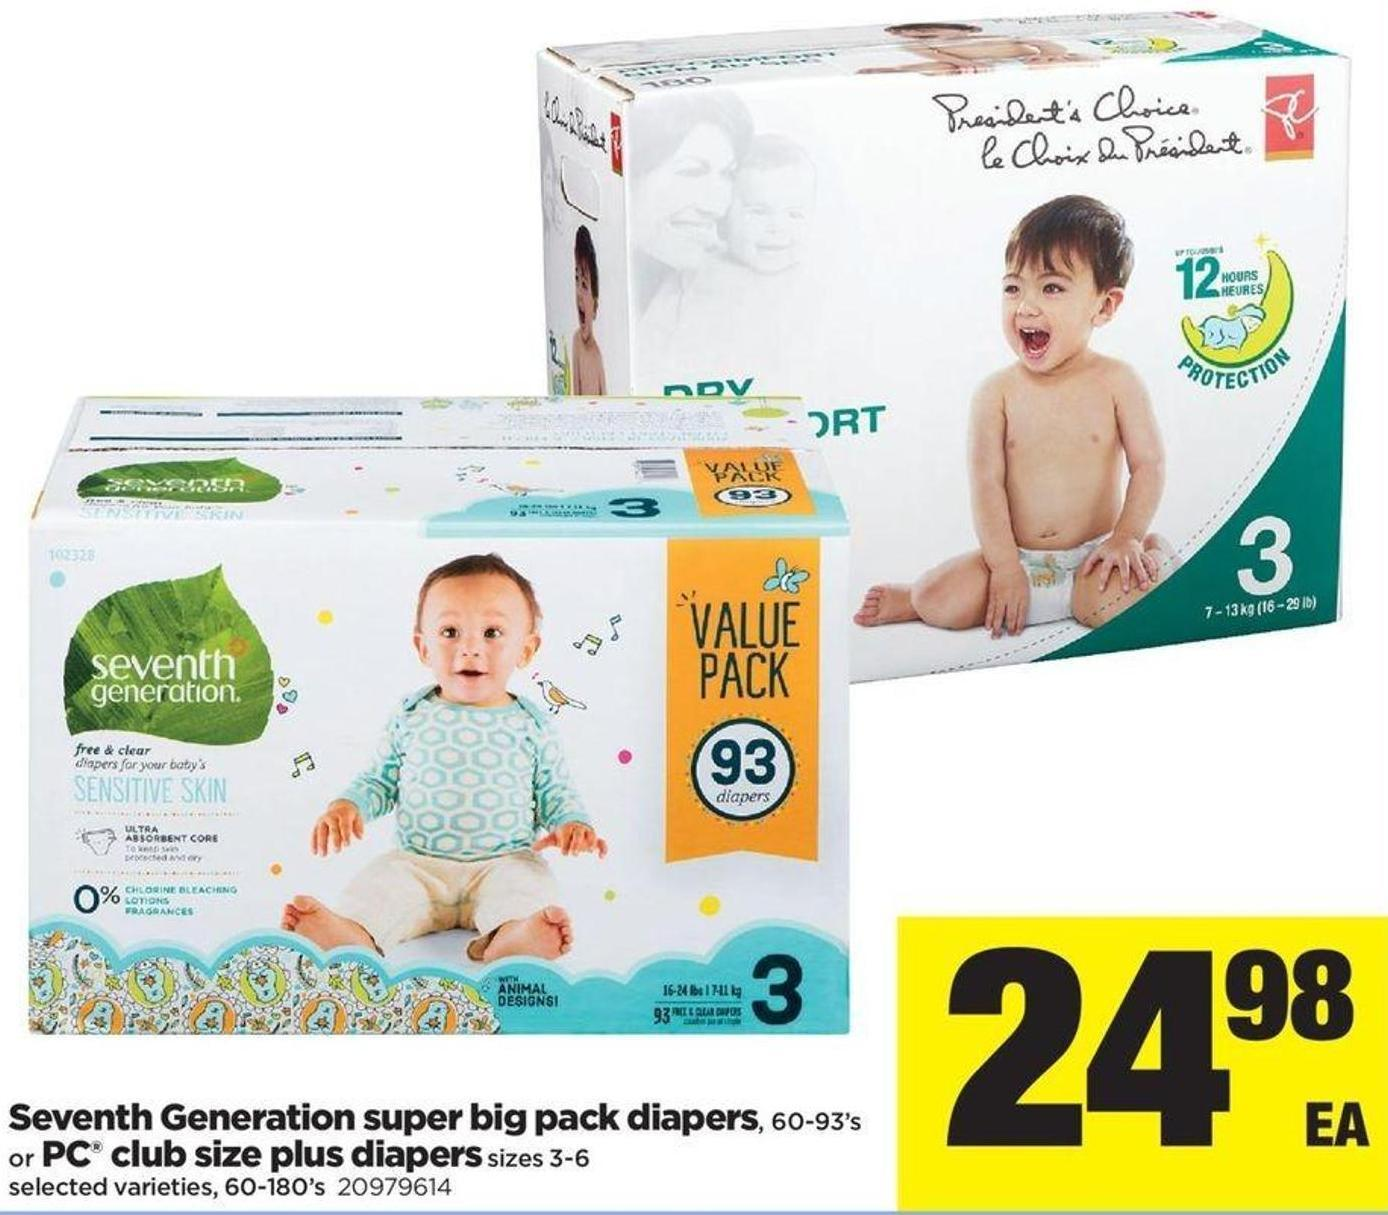 Seventh Generation Super Big Pack Diapers - 60-93's or PC Club Size Plus Diapers Sizes 3-6 - 60-180's